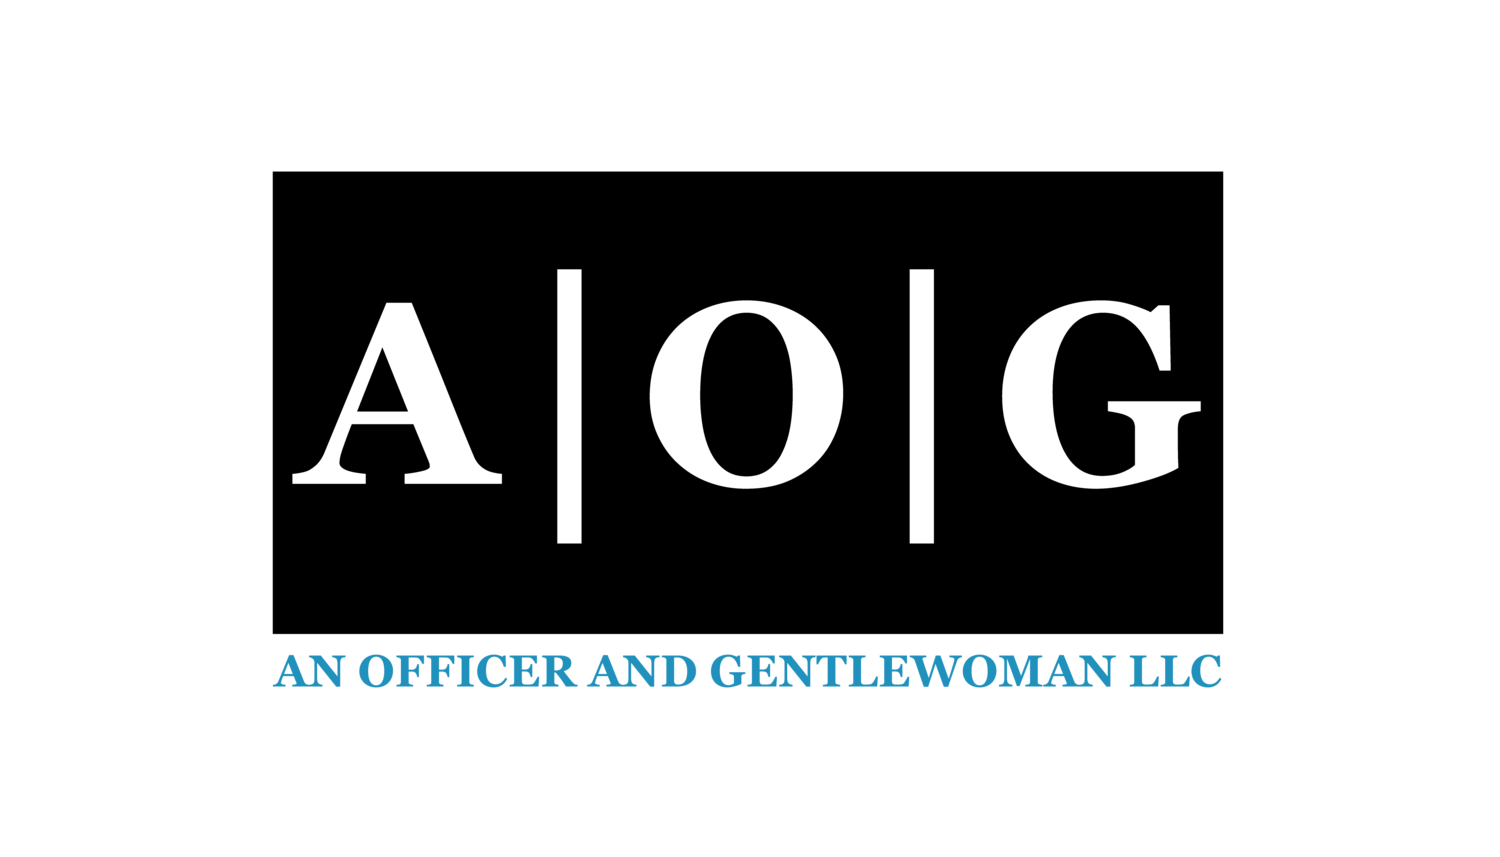 An Officer and Gentlewoman, LLC